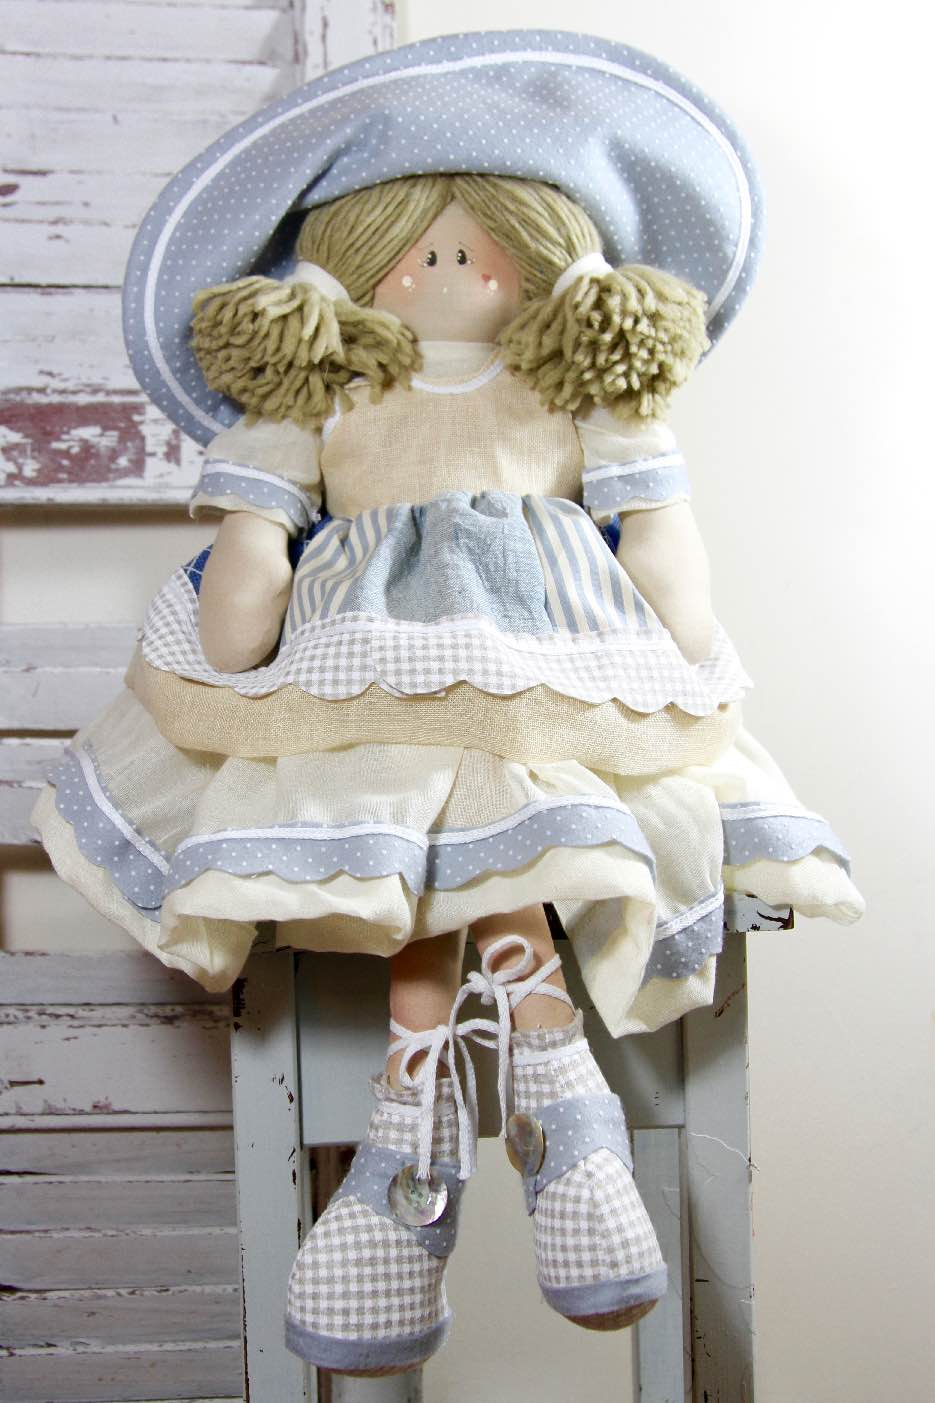 Bambola Holly Hobbie - Country Creations